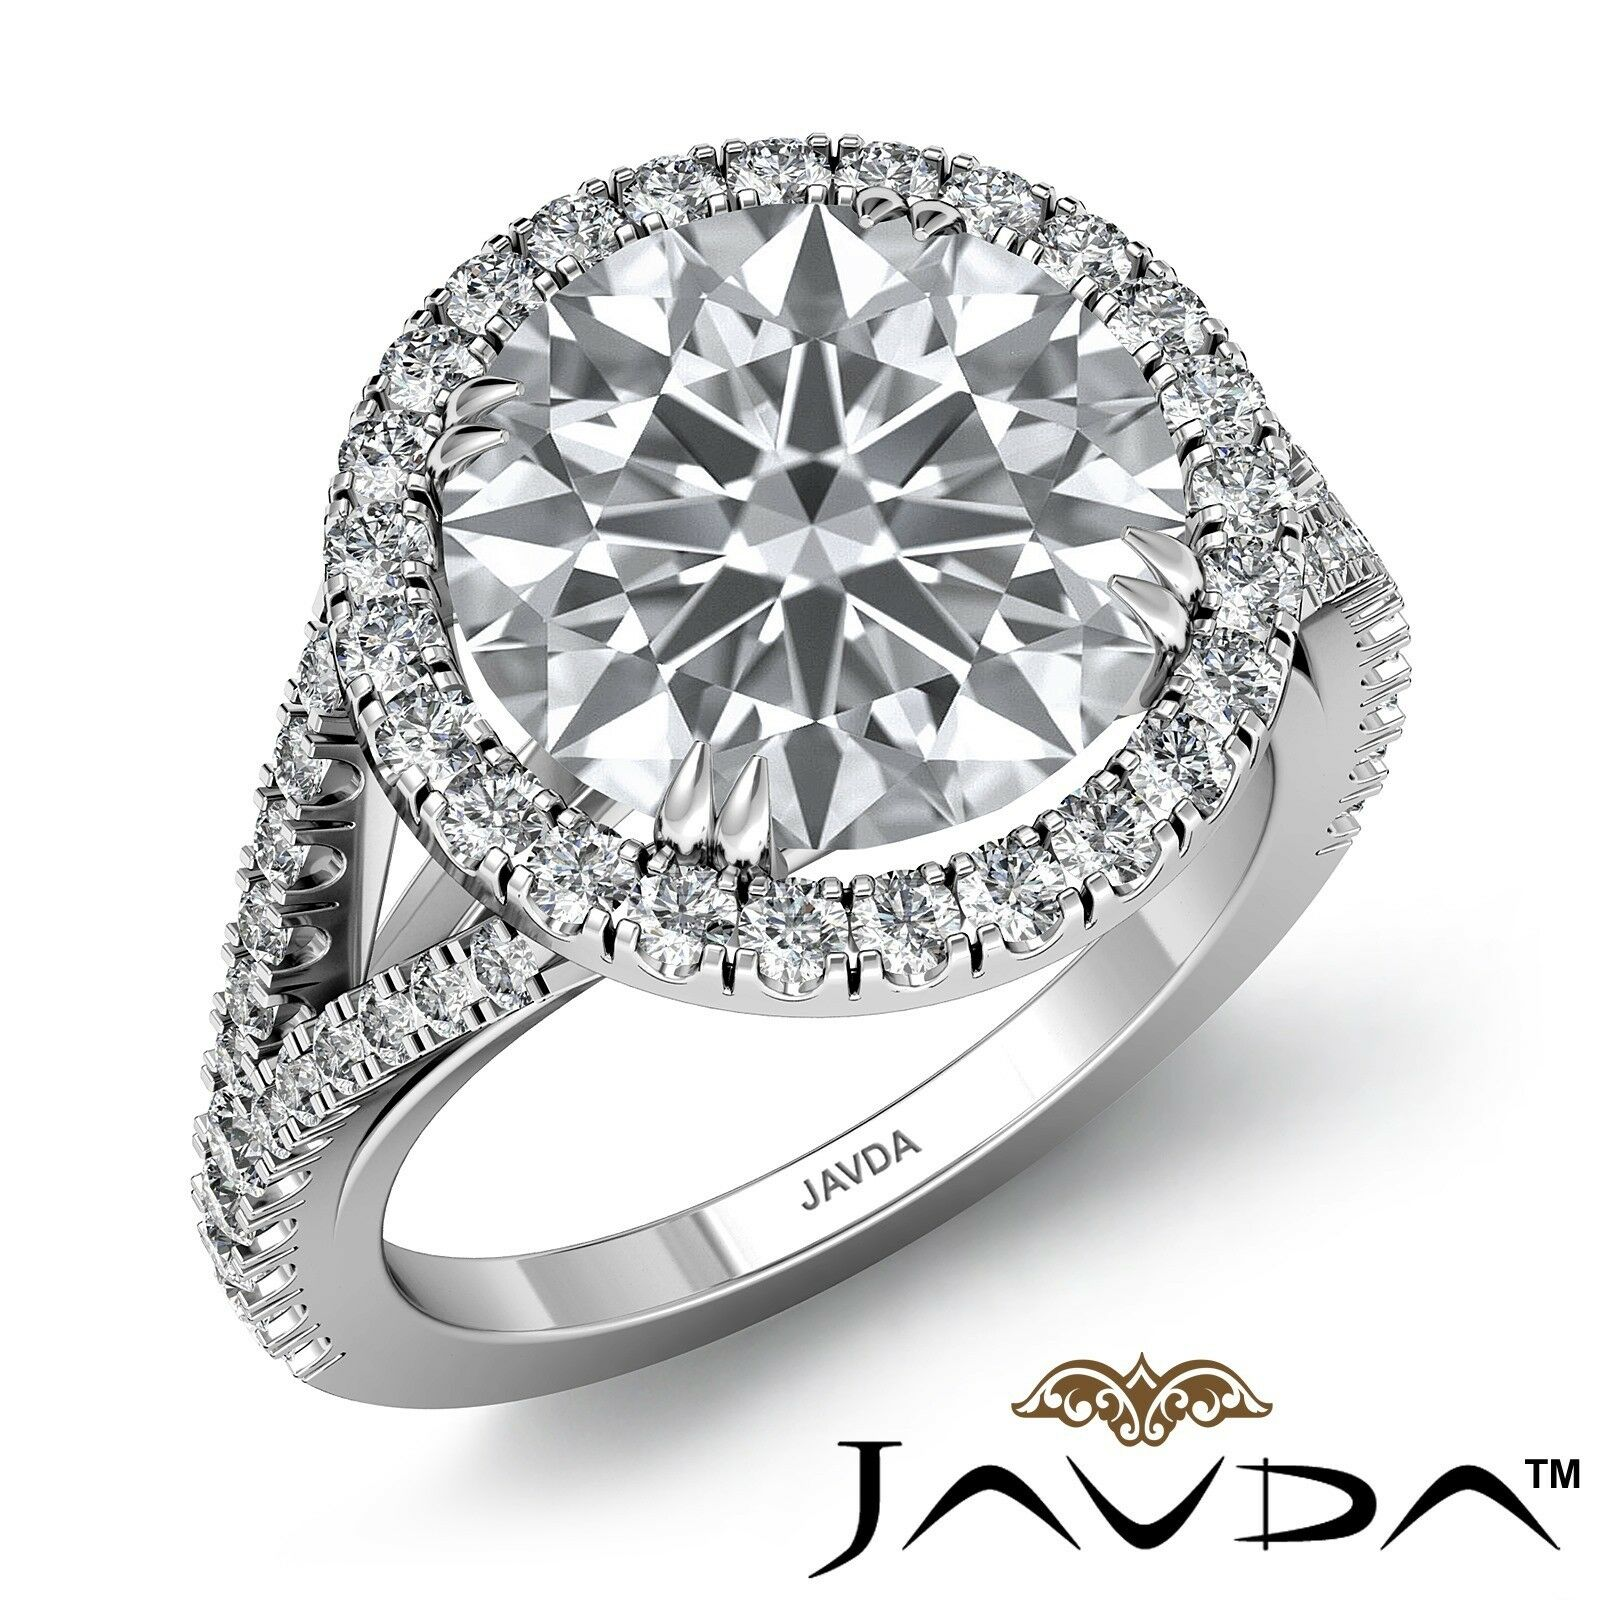 3.75ctw Heavy Metal Round Diamond Engagement Ring GIA I-VS2 Platinum Women Rings